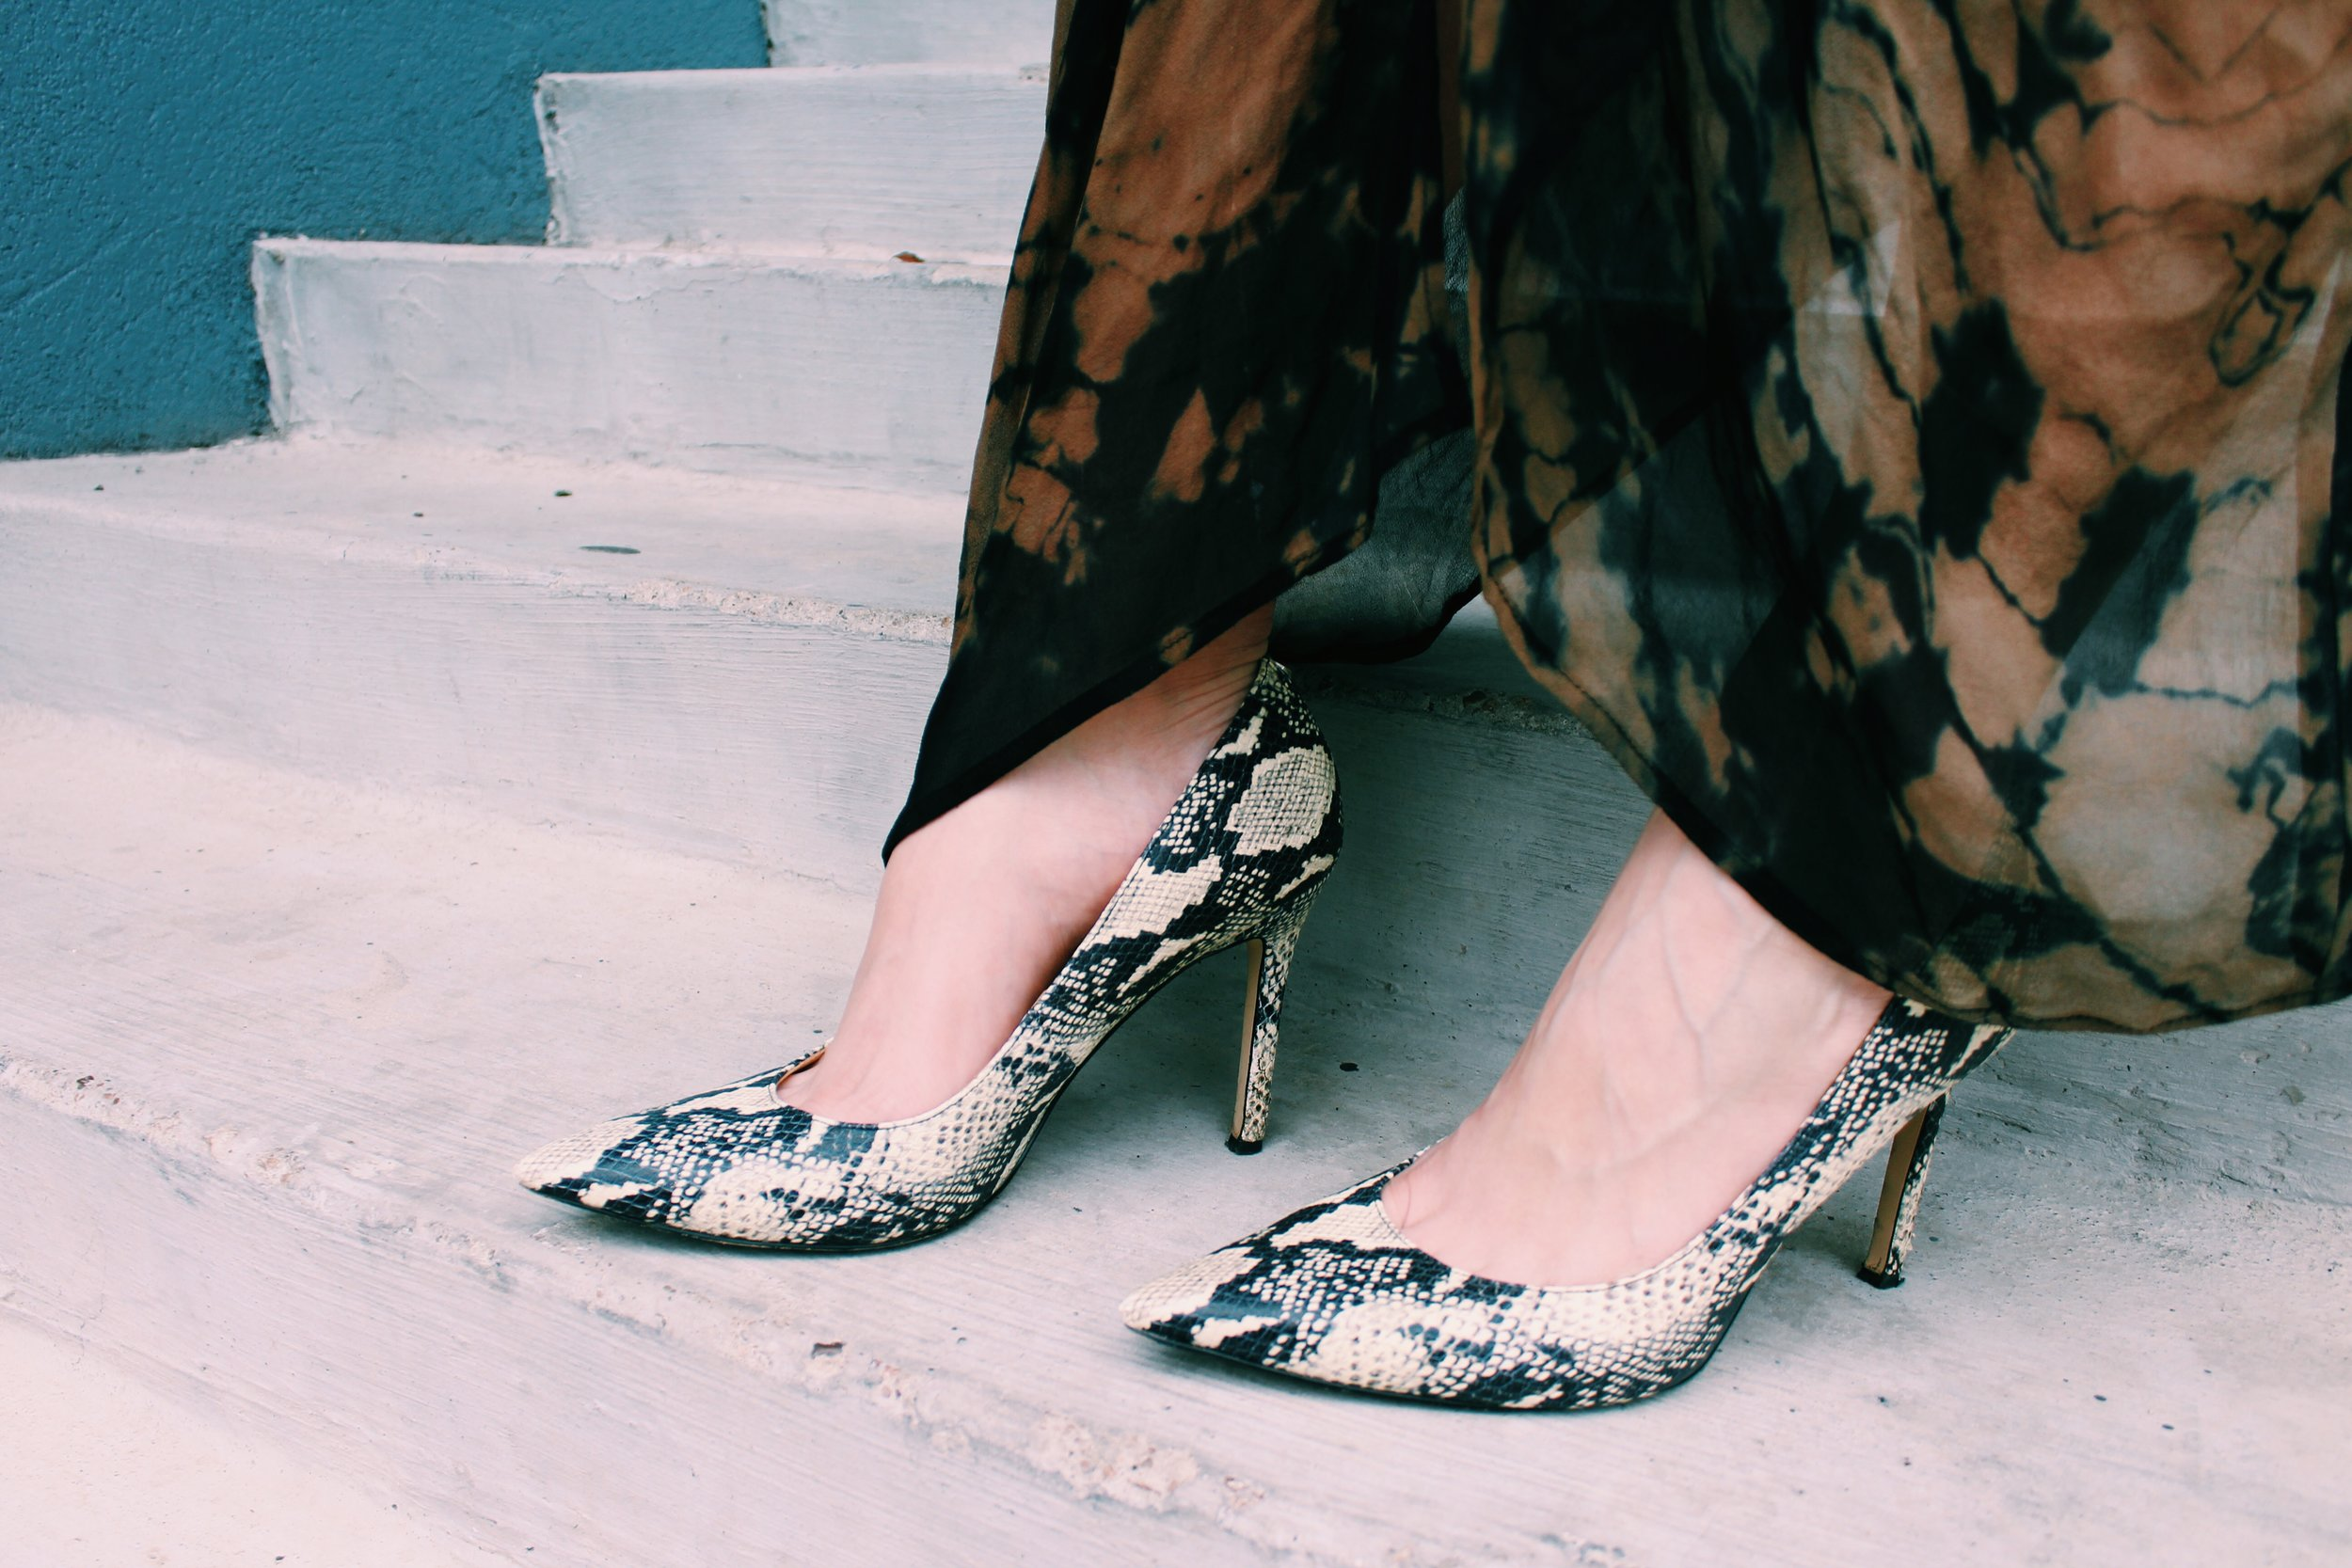 Go fierce with your look by adding snakeskin, leopard, or cheetah to your outfit.